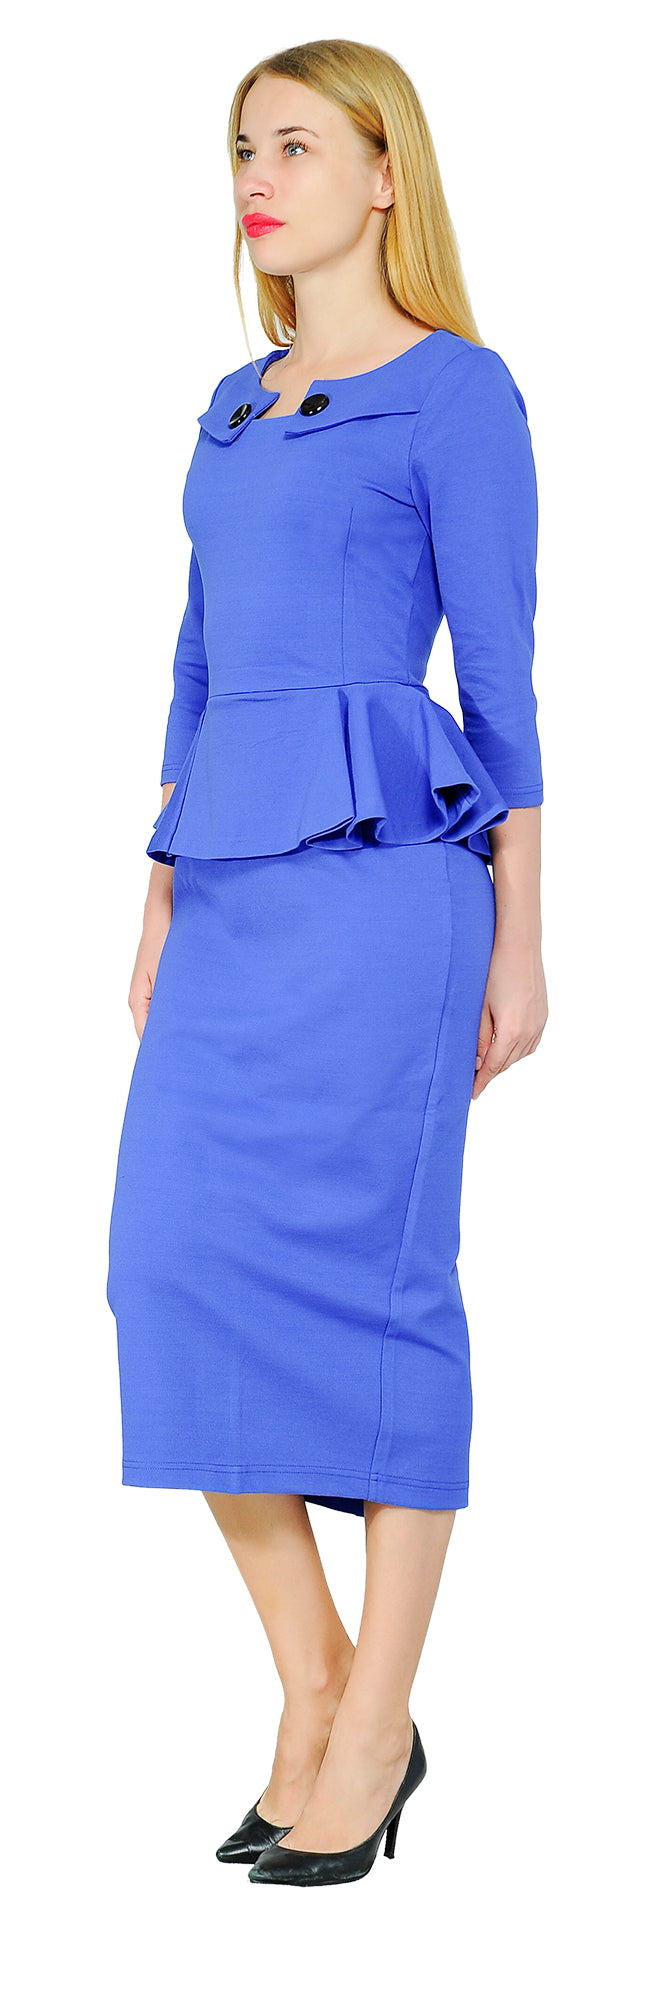 Women's Vintage Retro 1960s Peplum Pencil Midi Dress | marycrafts